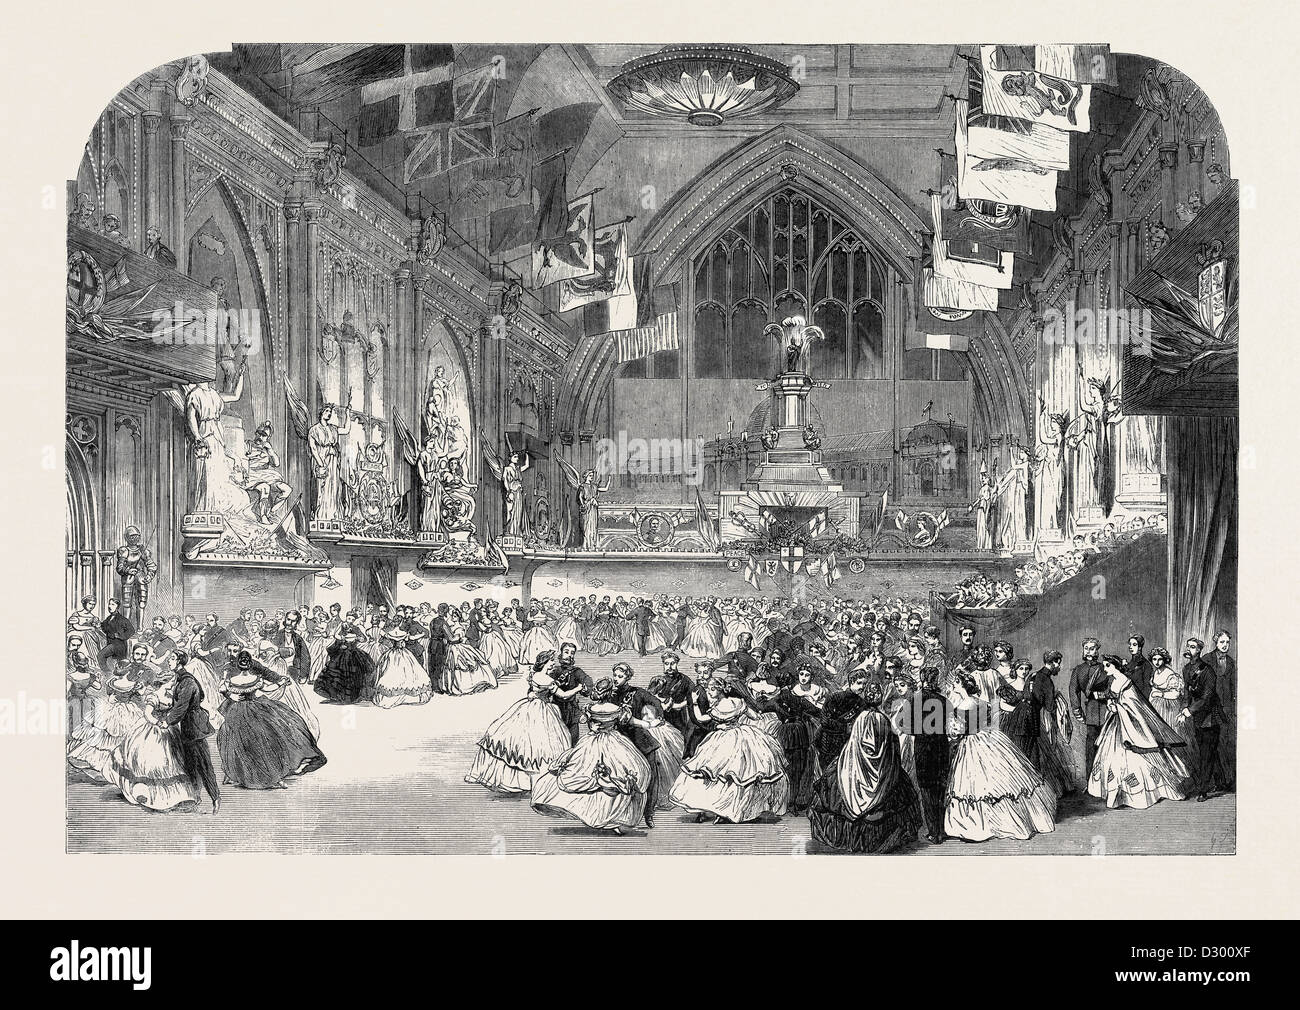 THE LONDON RIFLE BRIGADE BALL AT GUILDHALL - Stock Image